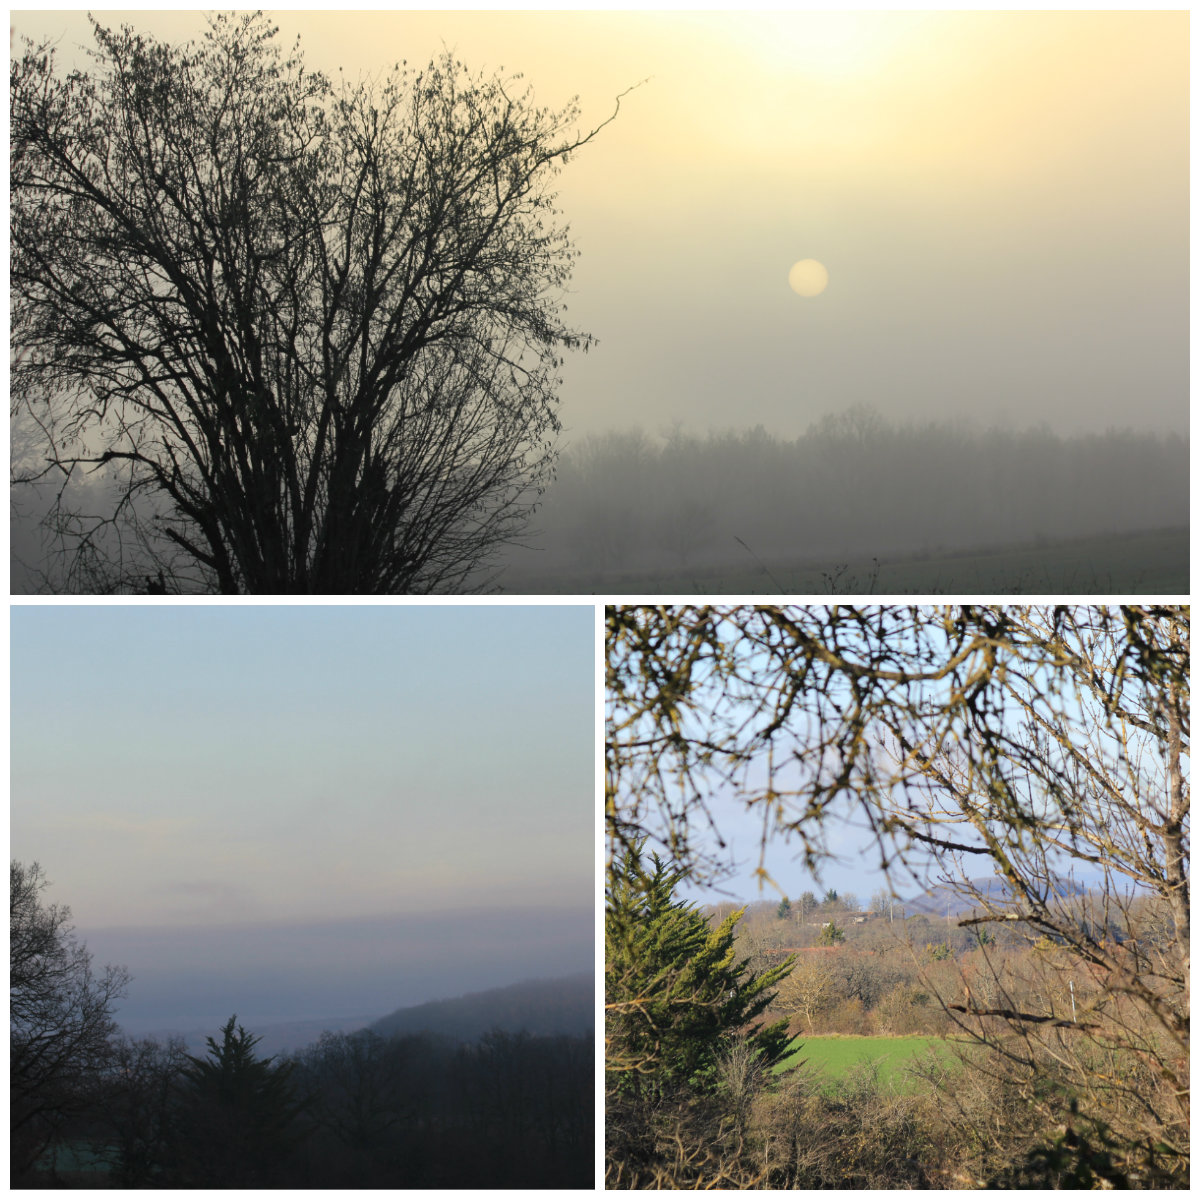 The sun breaking through the morning mist and northern views. January 2016.